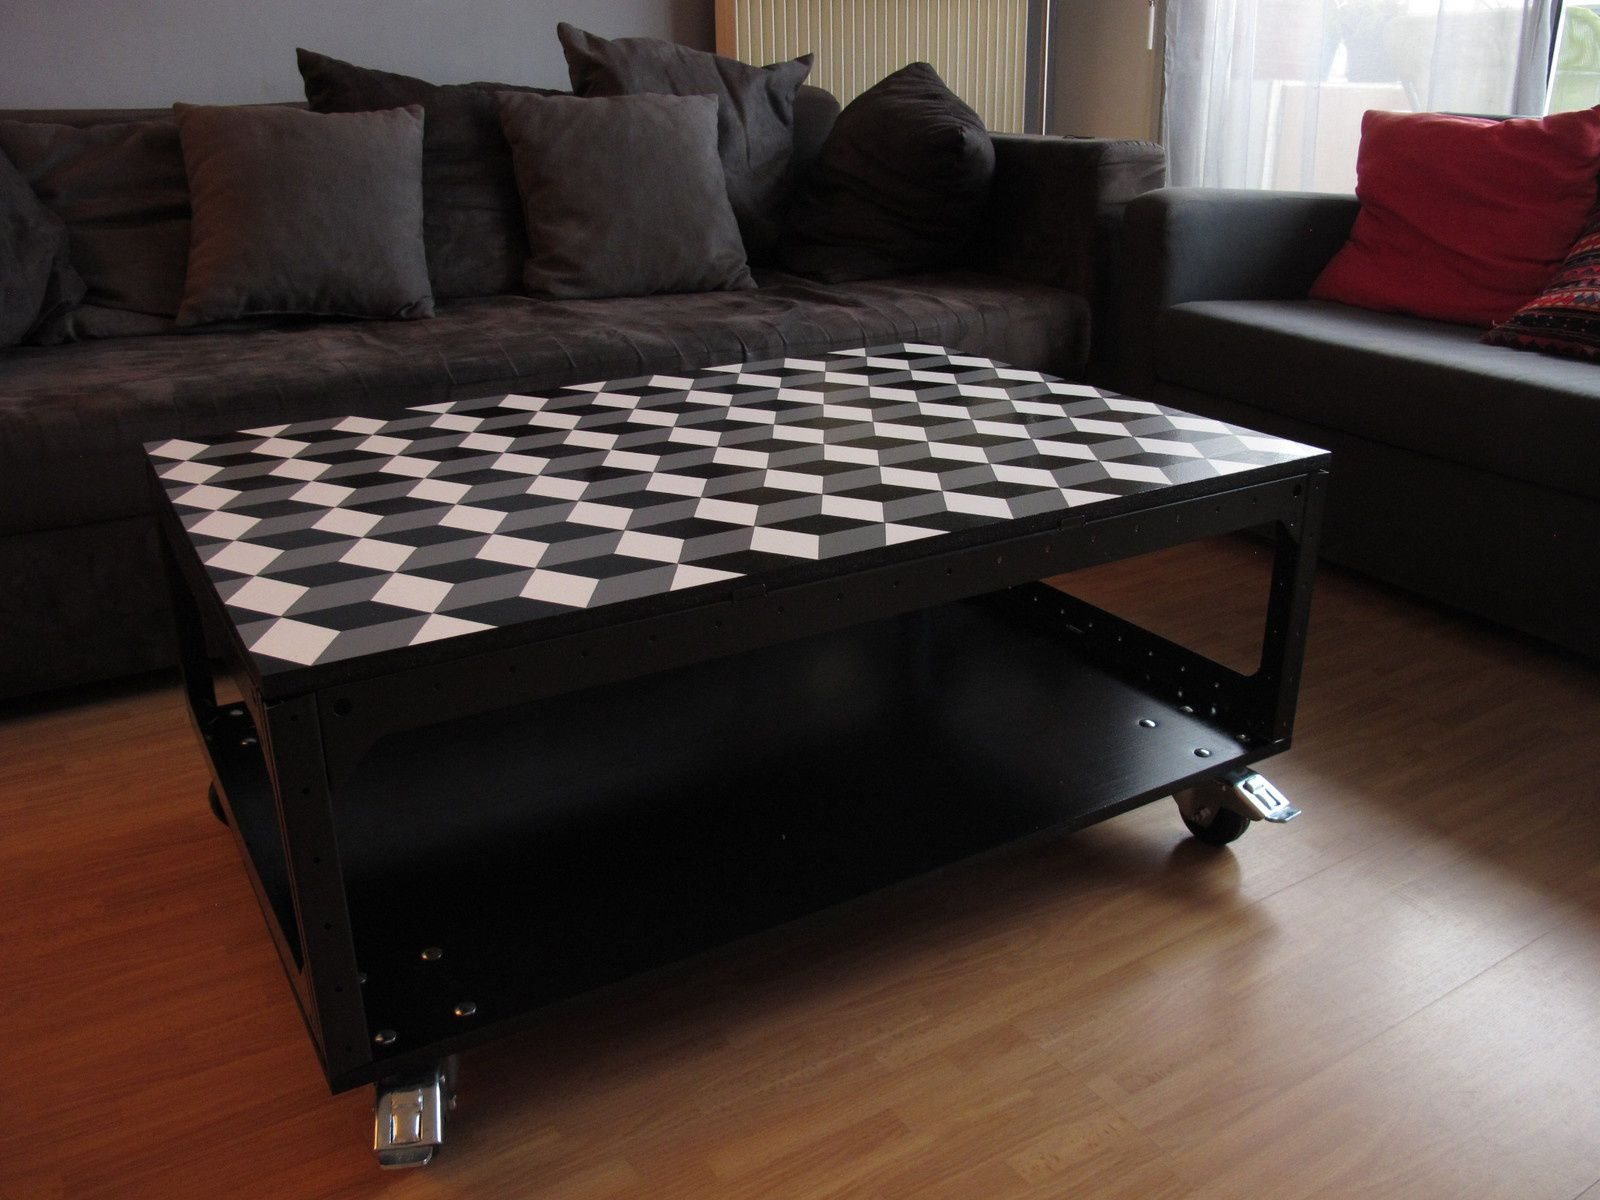 nos derni res cr ations de tables basses palette roulettes d co et recycl e doobi cr ation. Black Bedroom Furniture Sets. Home Design Ideas